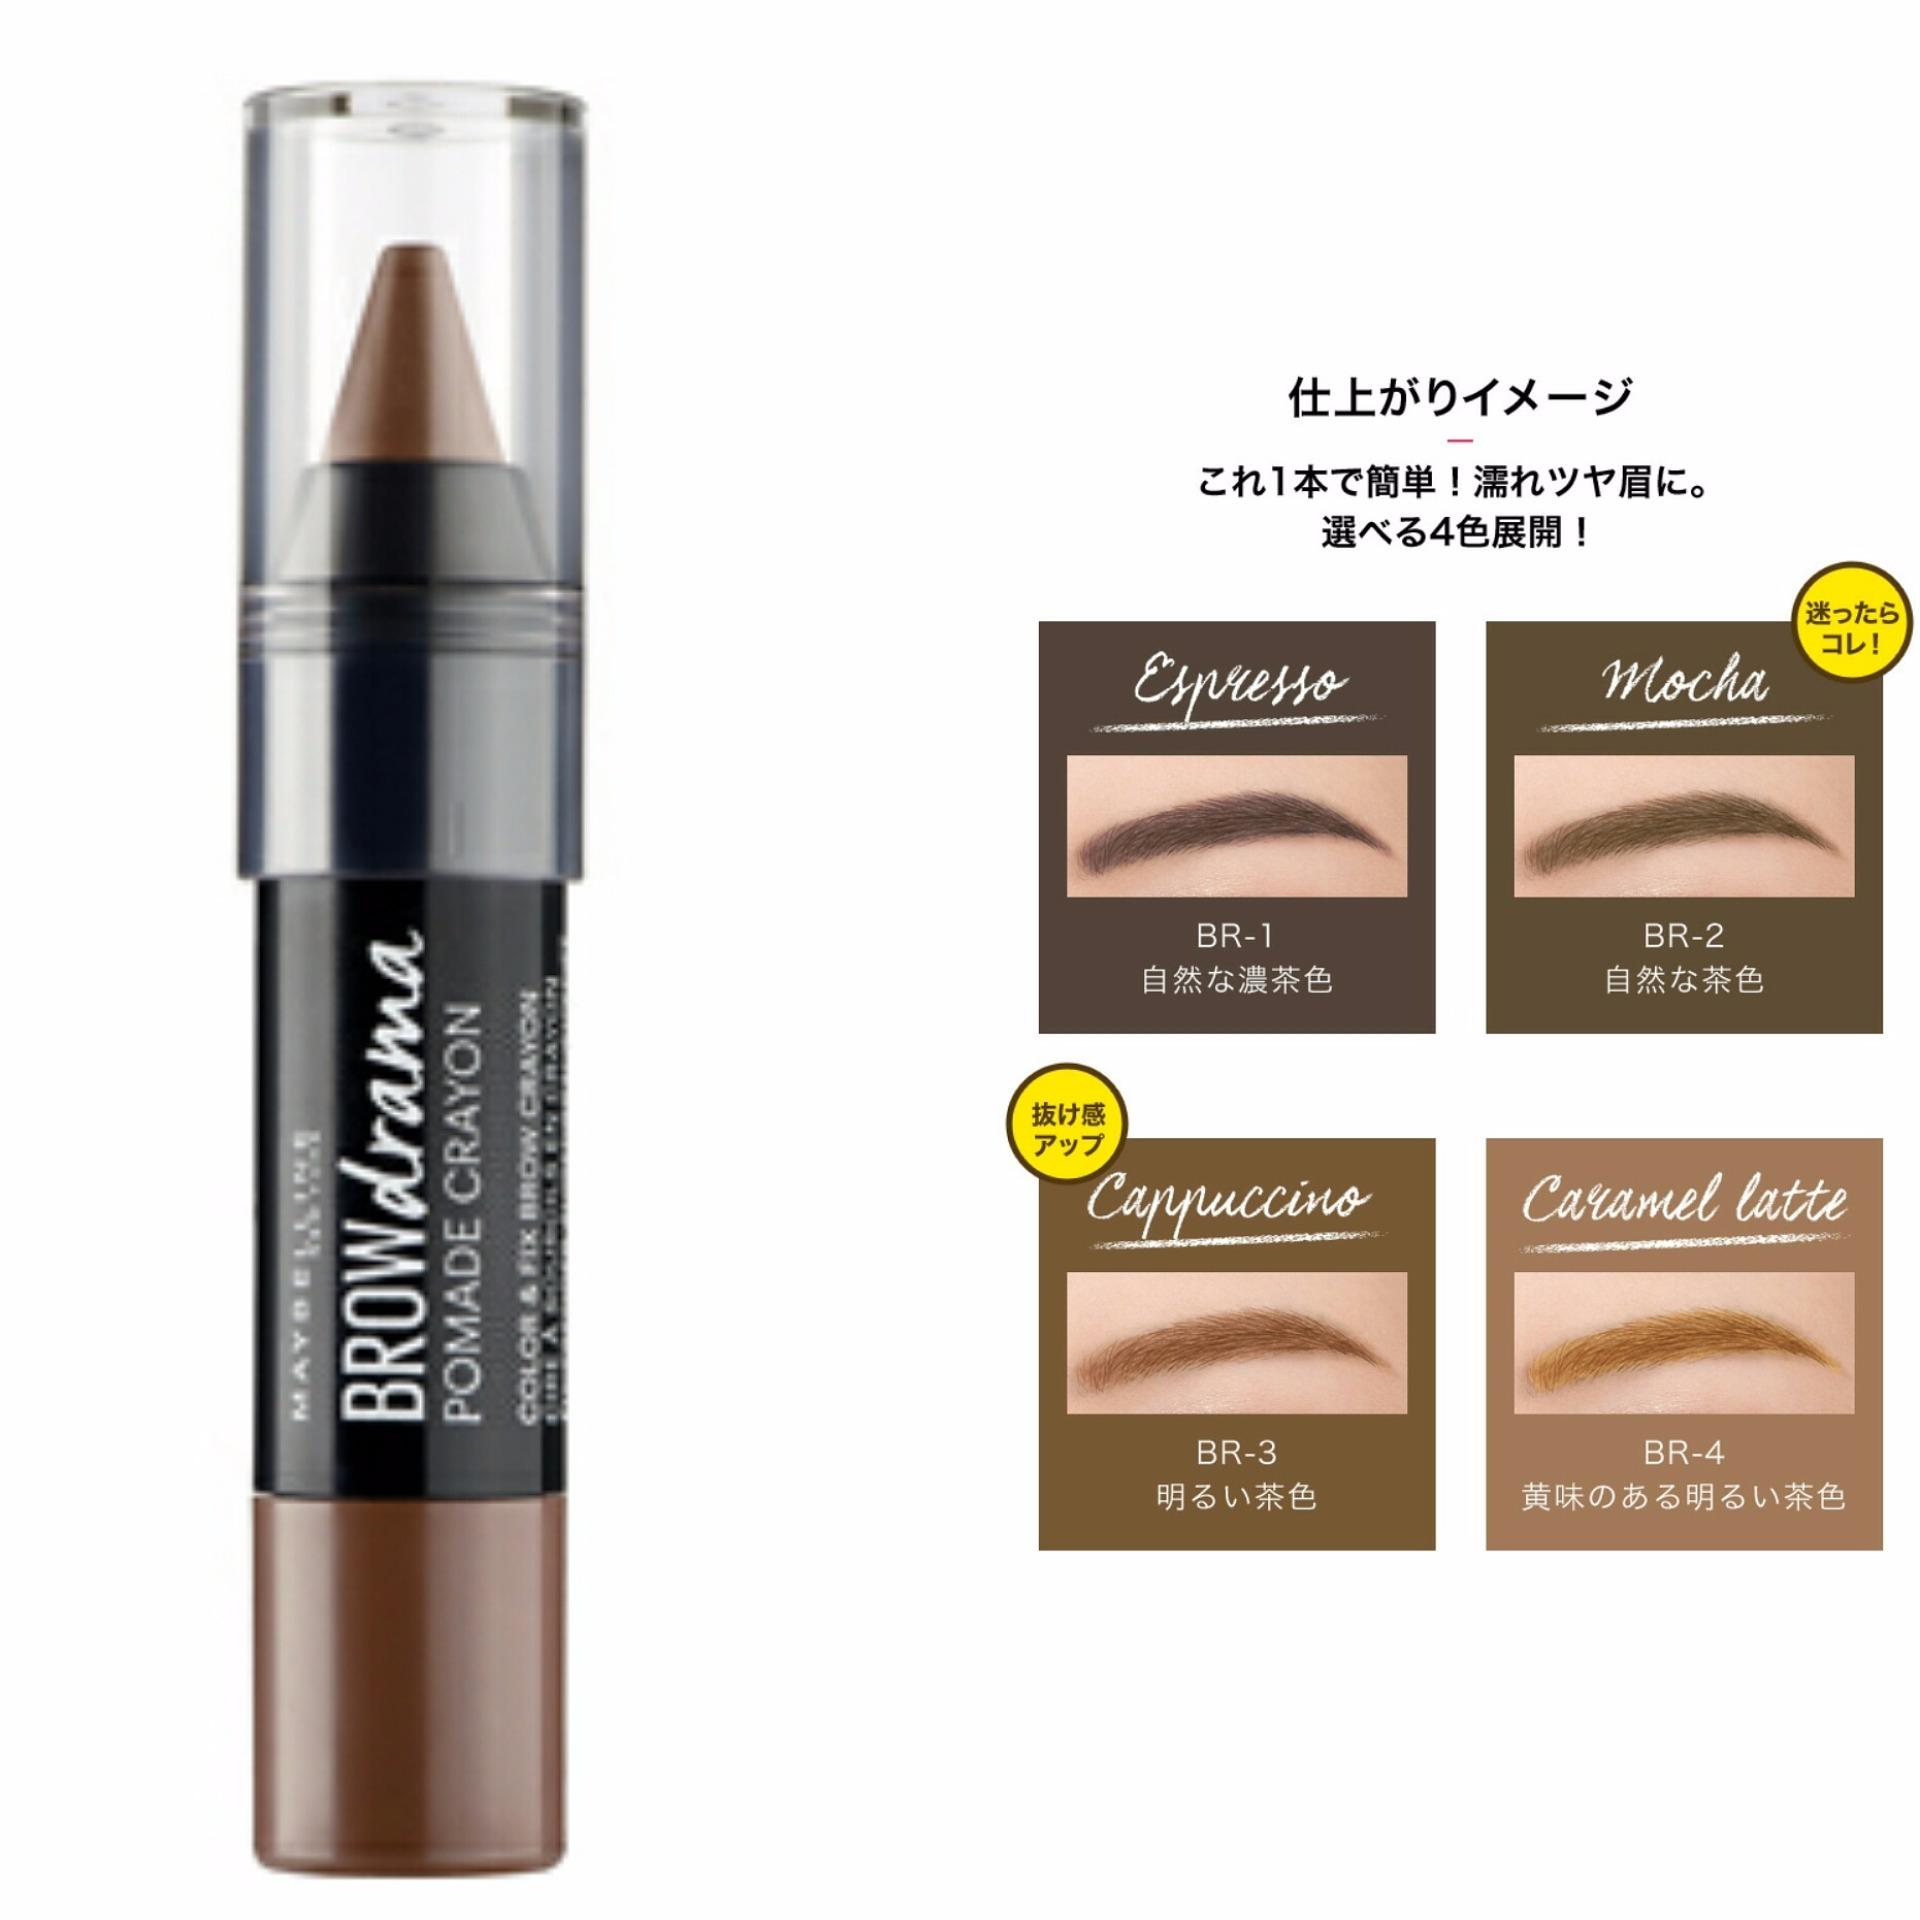 1 Maybelline Fashion Brow Pomade Crayon - BR2 Mocca